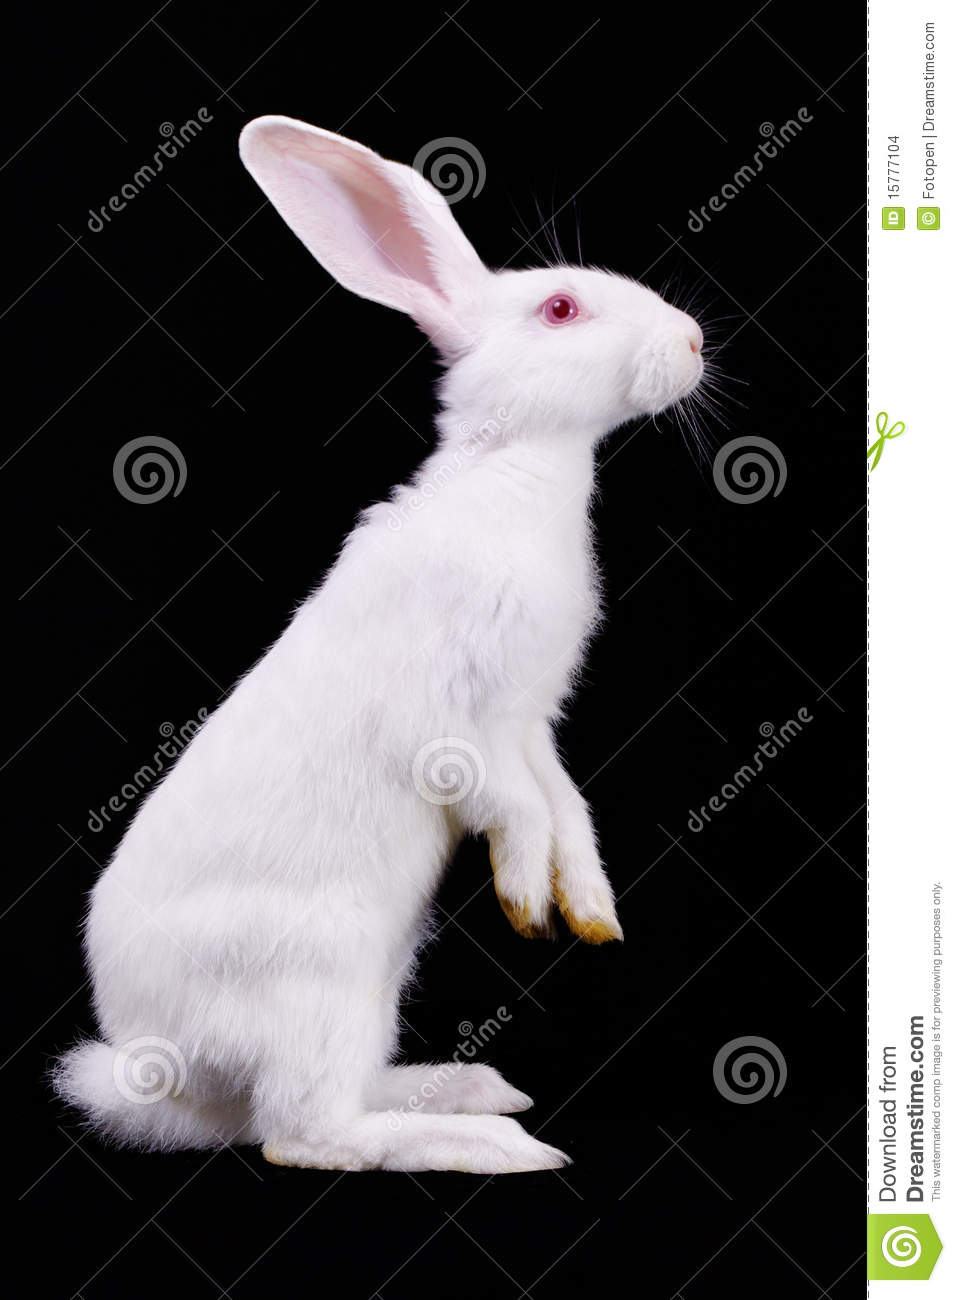 White rabbit standing on its hind legs. Side view. Black background.